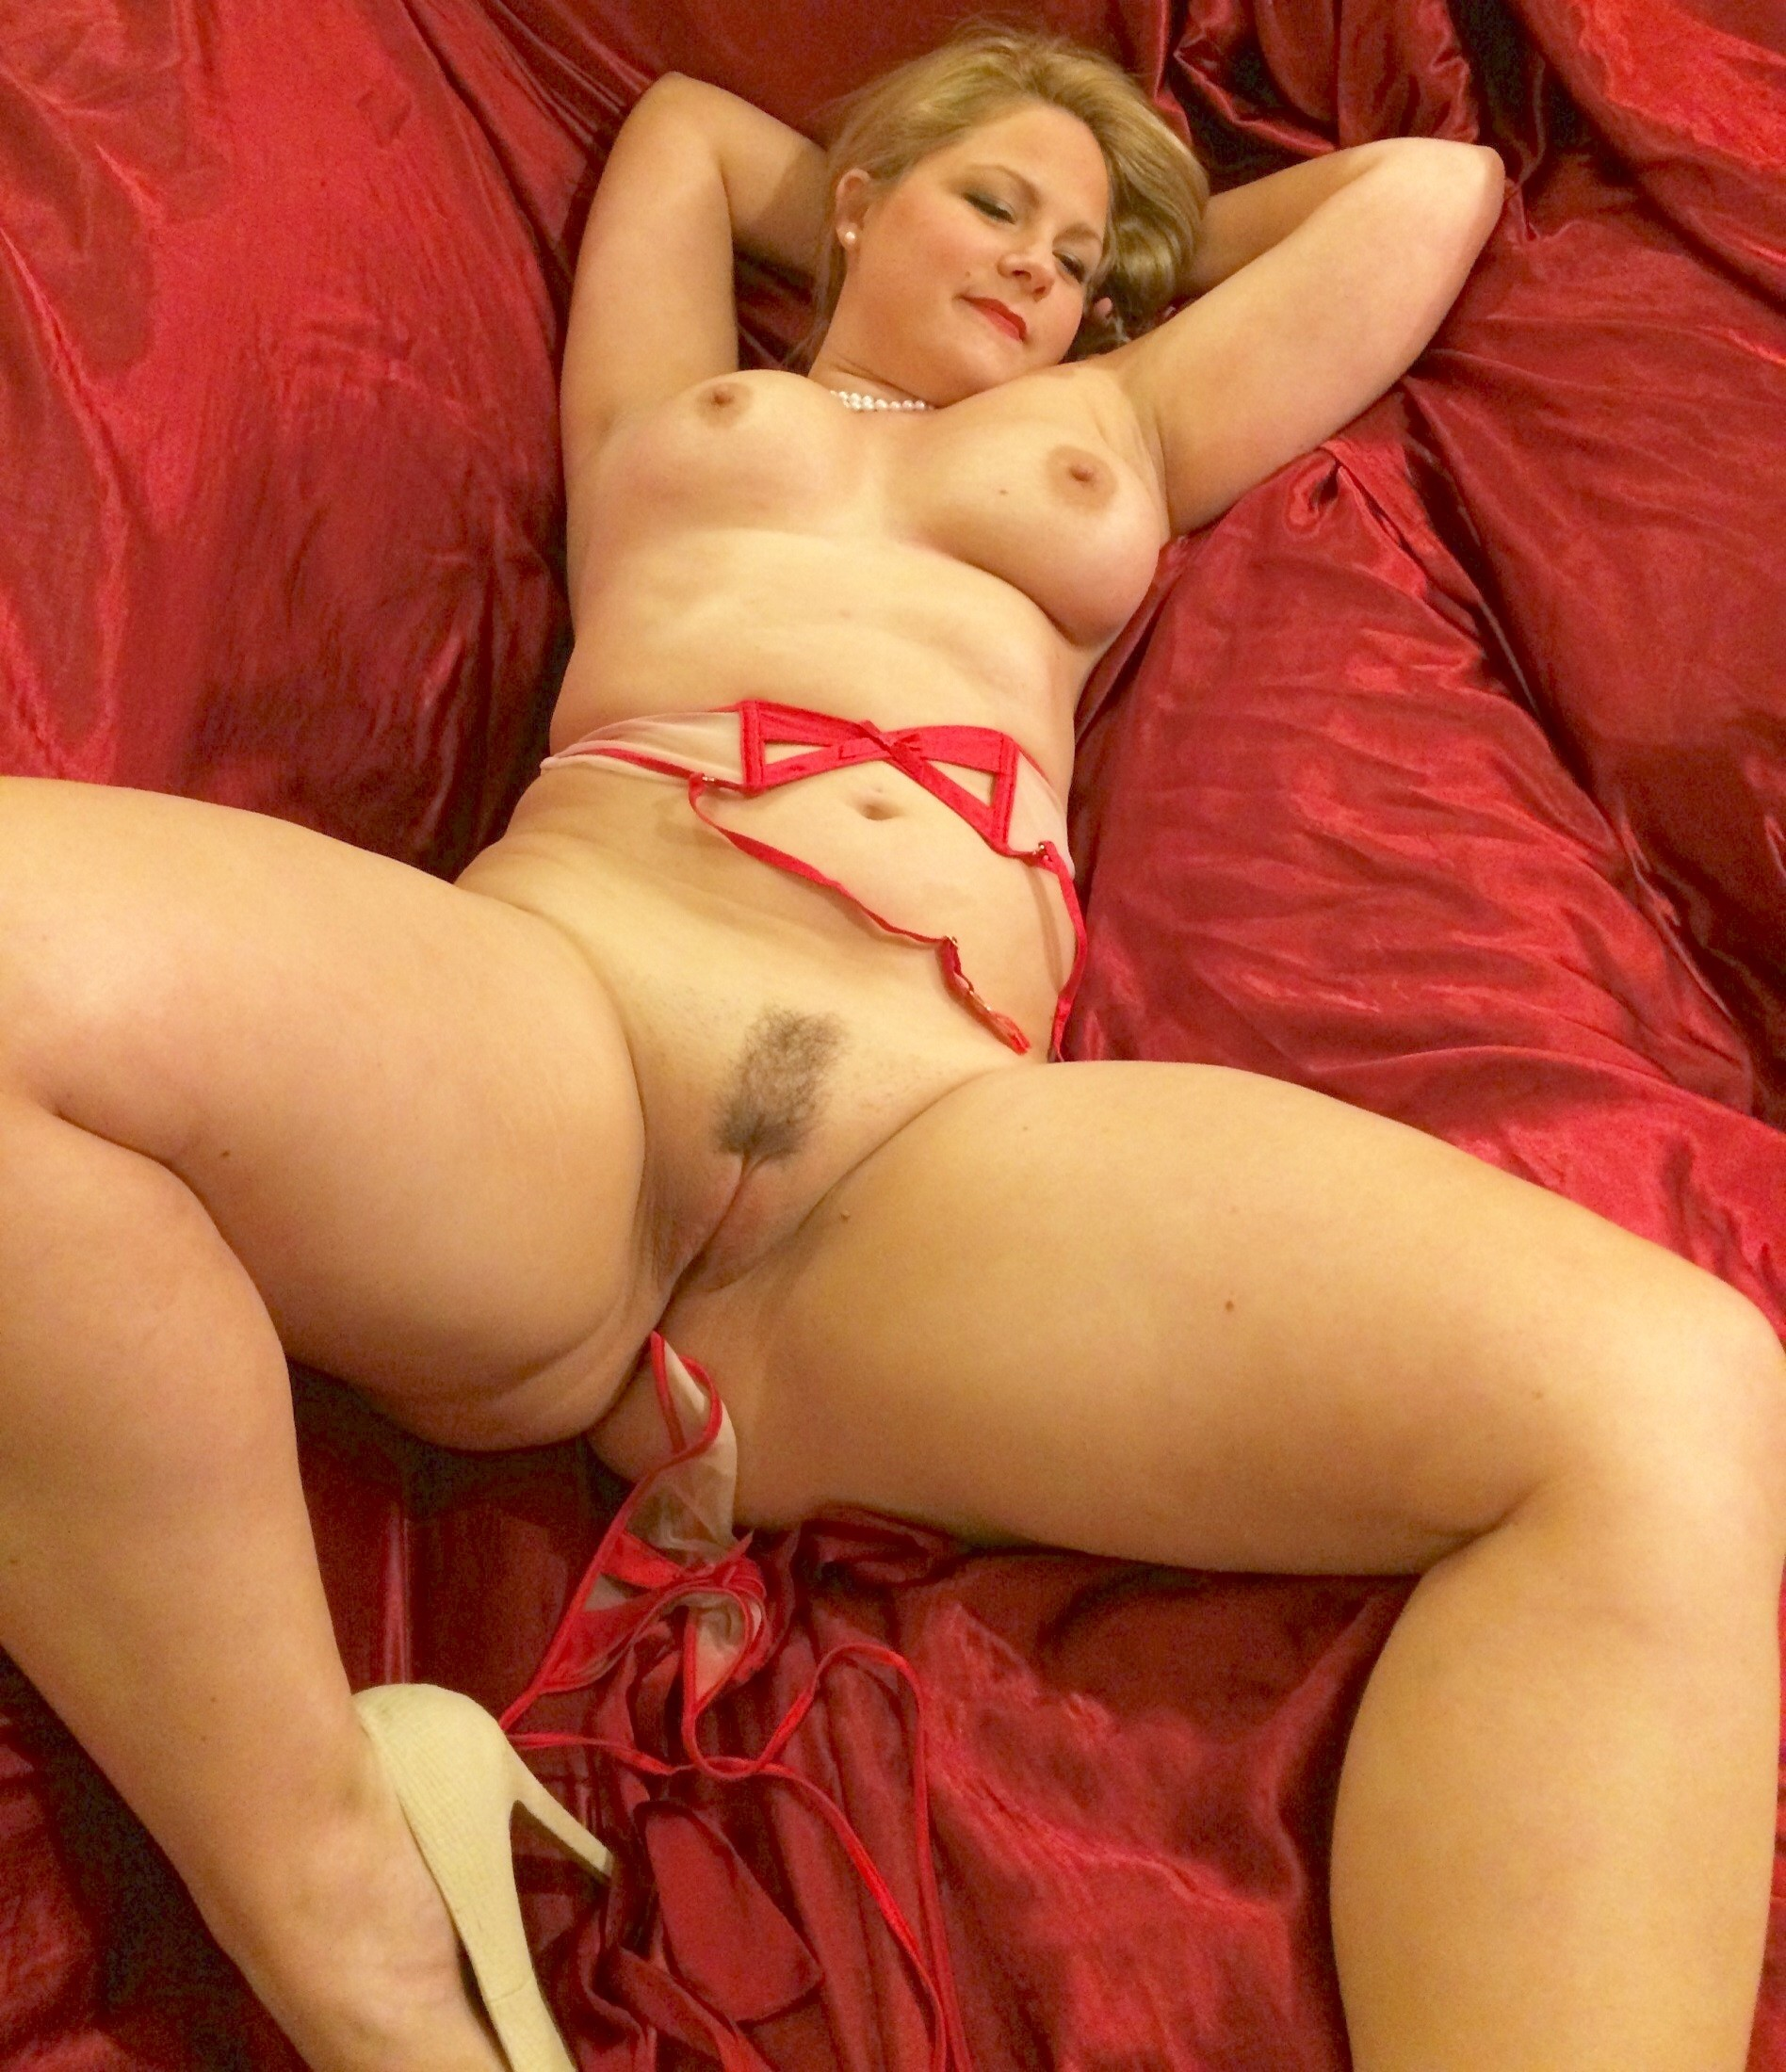 tied up cum covered girl porn tube Milf Mature Amateur Pussy Shaved Naked Niceslit Showingpussy Lickablepussy